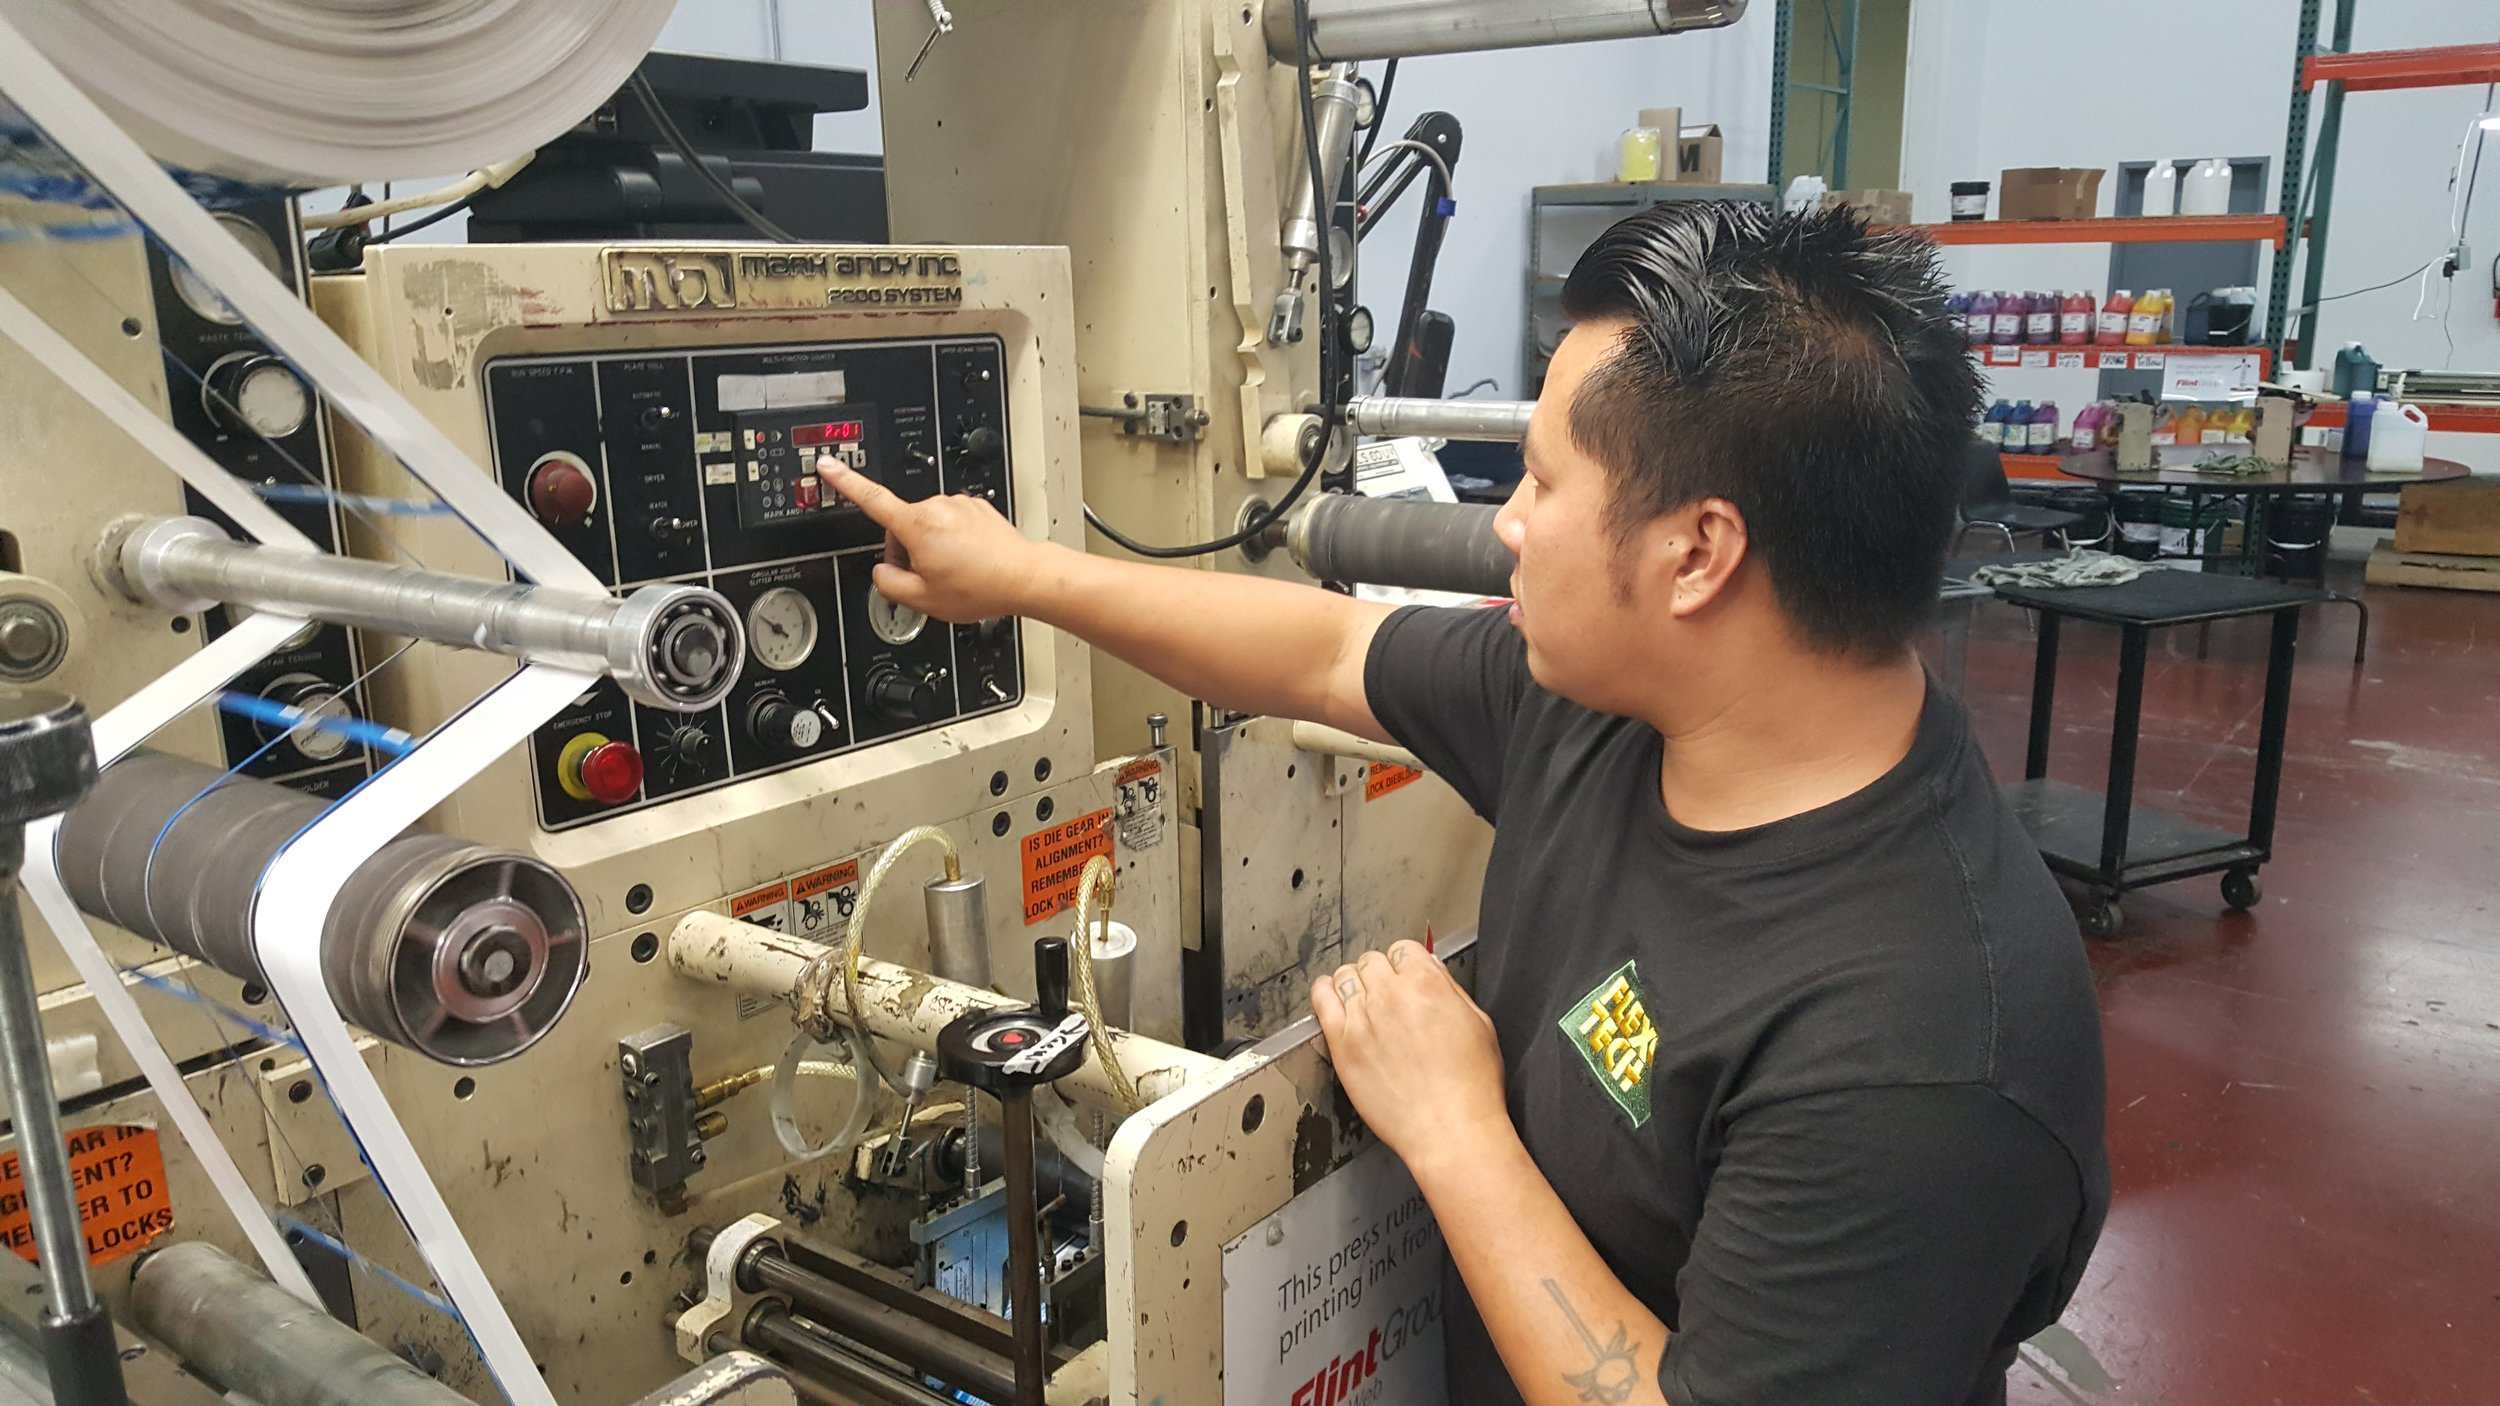 Xai Thao - I was working as a press helper who was new to the flexo industry. After going through the Flexo Tech Press Operator training program I was able to become an entry-level operator, not a helper anymore. I am excited about my new career and the benefit it will have on my future.